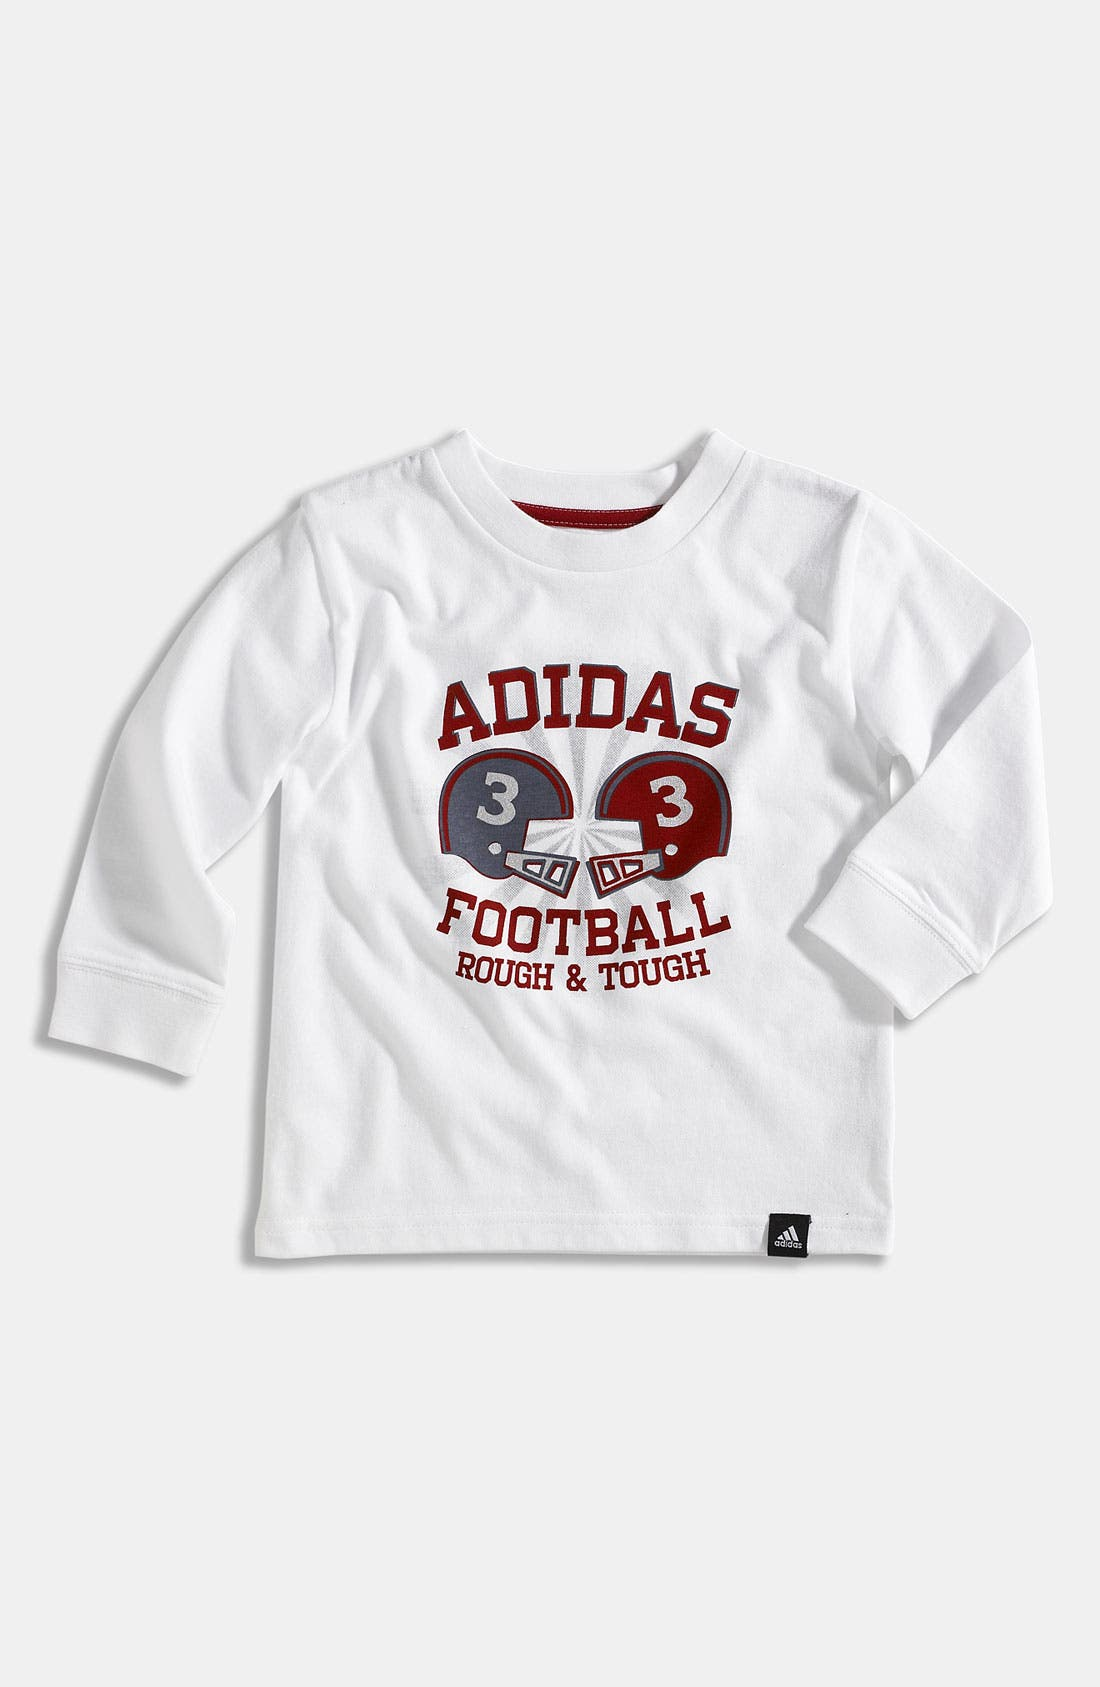 Alternate Image 1 Selected - adidas 'Rough and Tough' T-Shirt (Toddler)